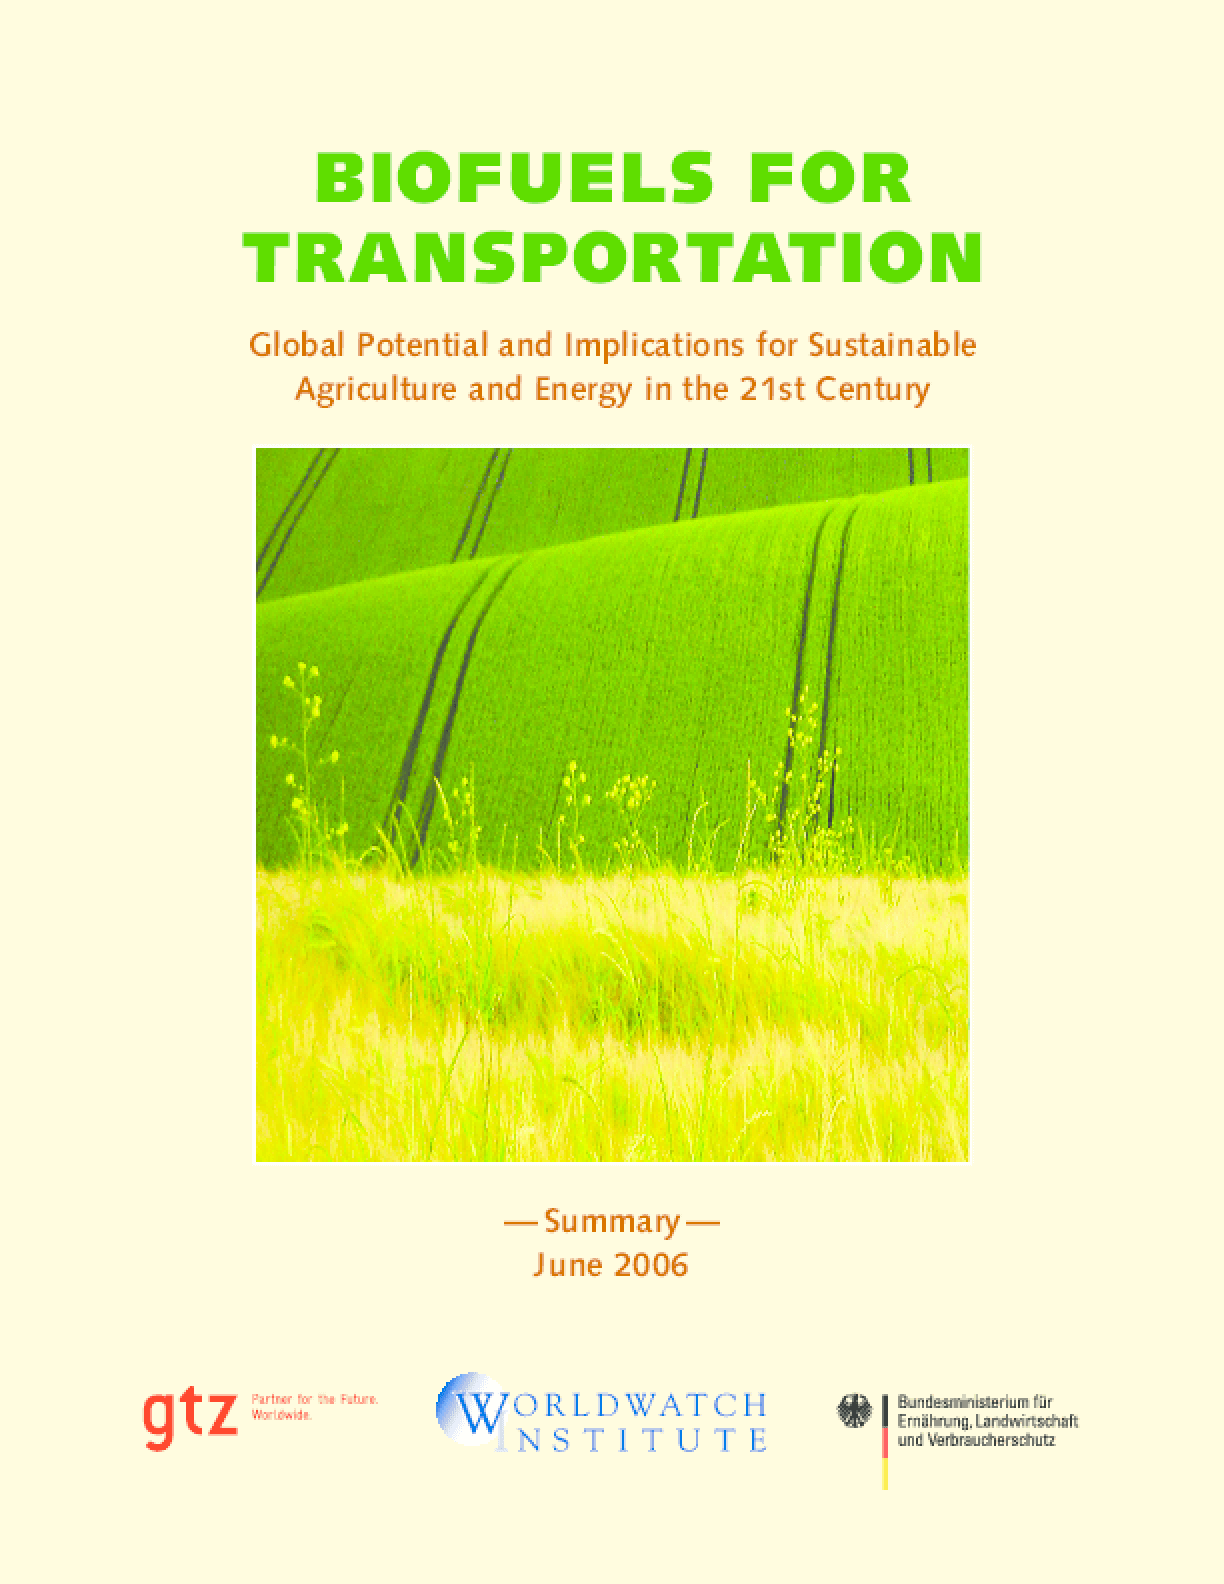 Biofuels for Transportation